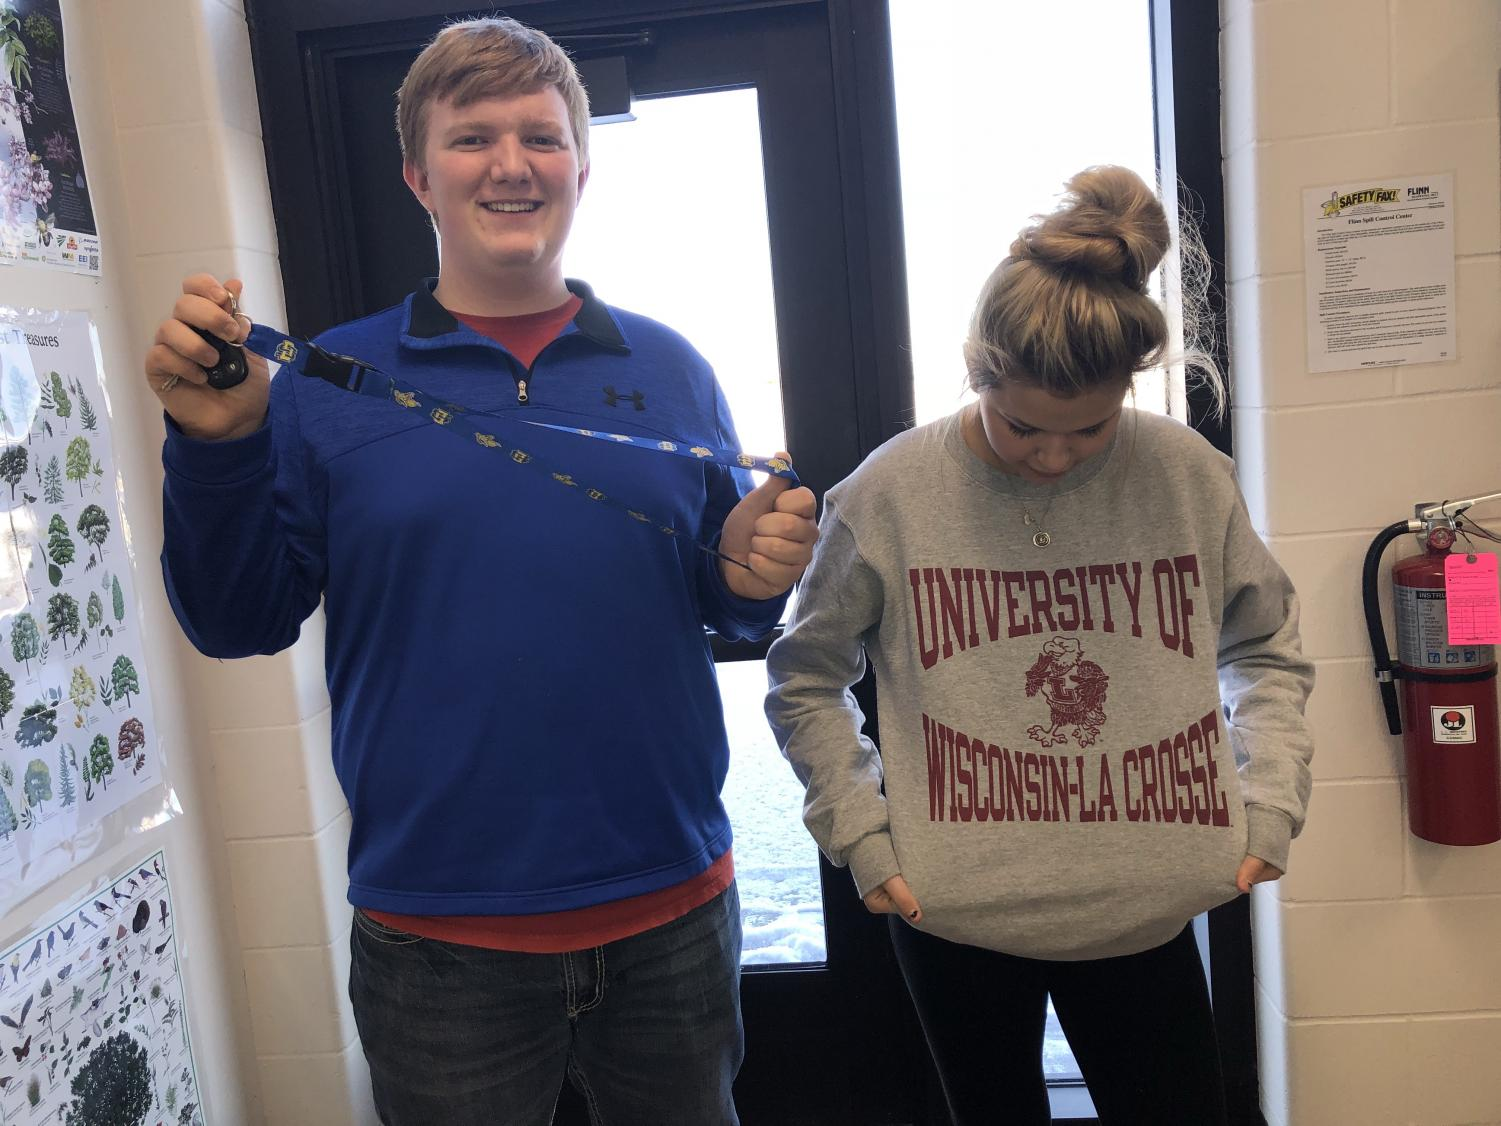 RAMSI & GRADEN sporting their future colleges gear